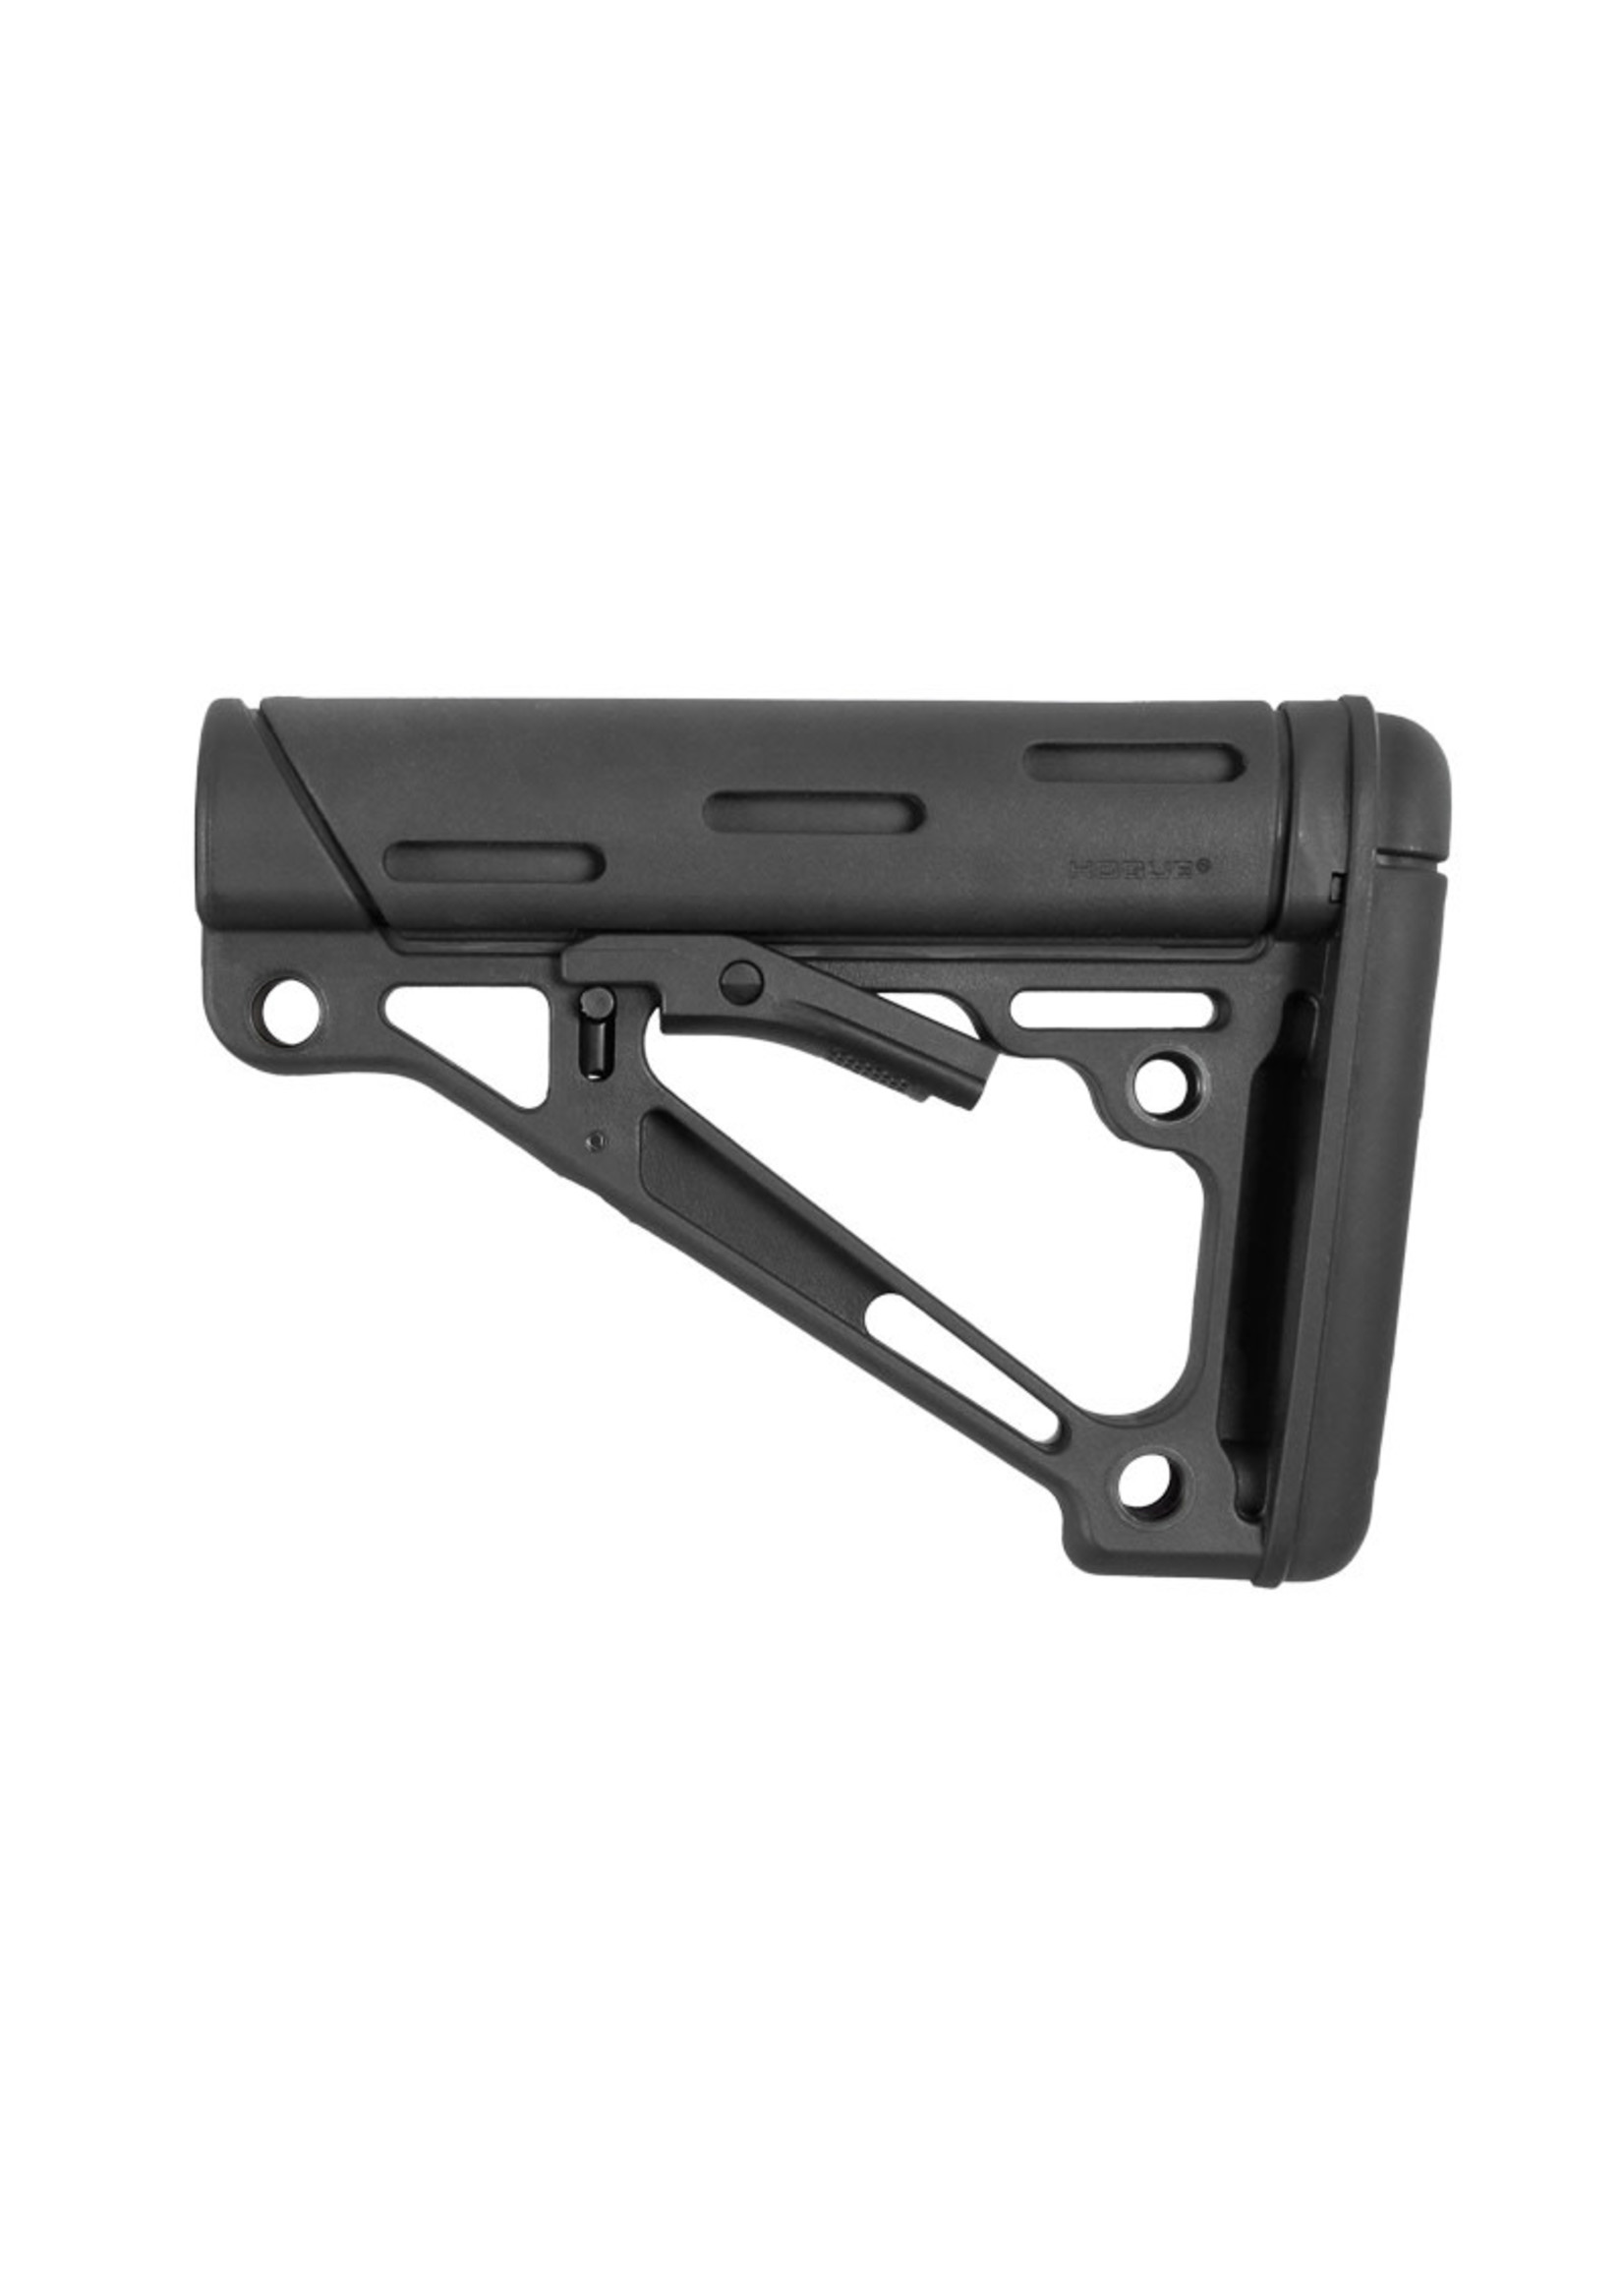 Hogue Hogue AR-15 / M16: OverMolded Collapsible Buttstock (Fits Mil-Spec Buffer Tube) - Black